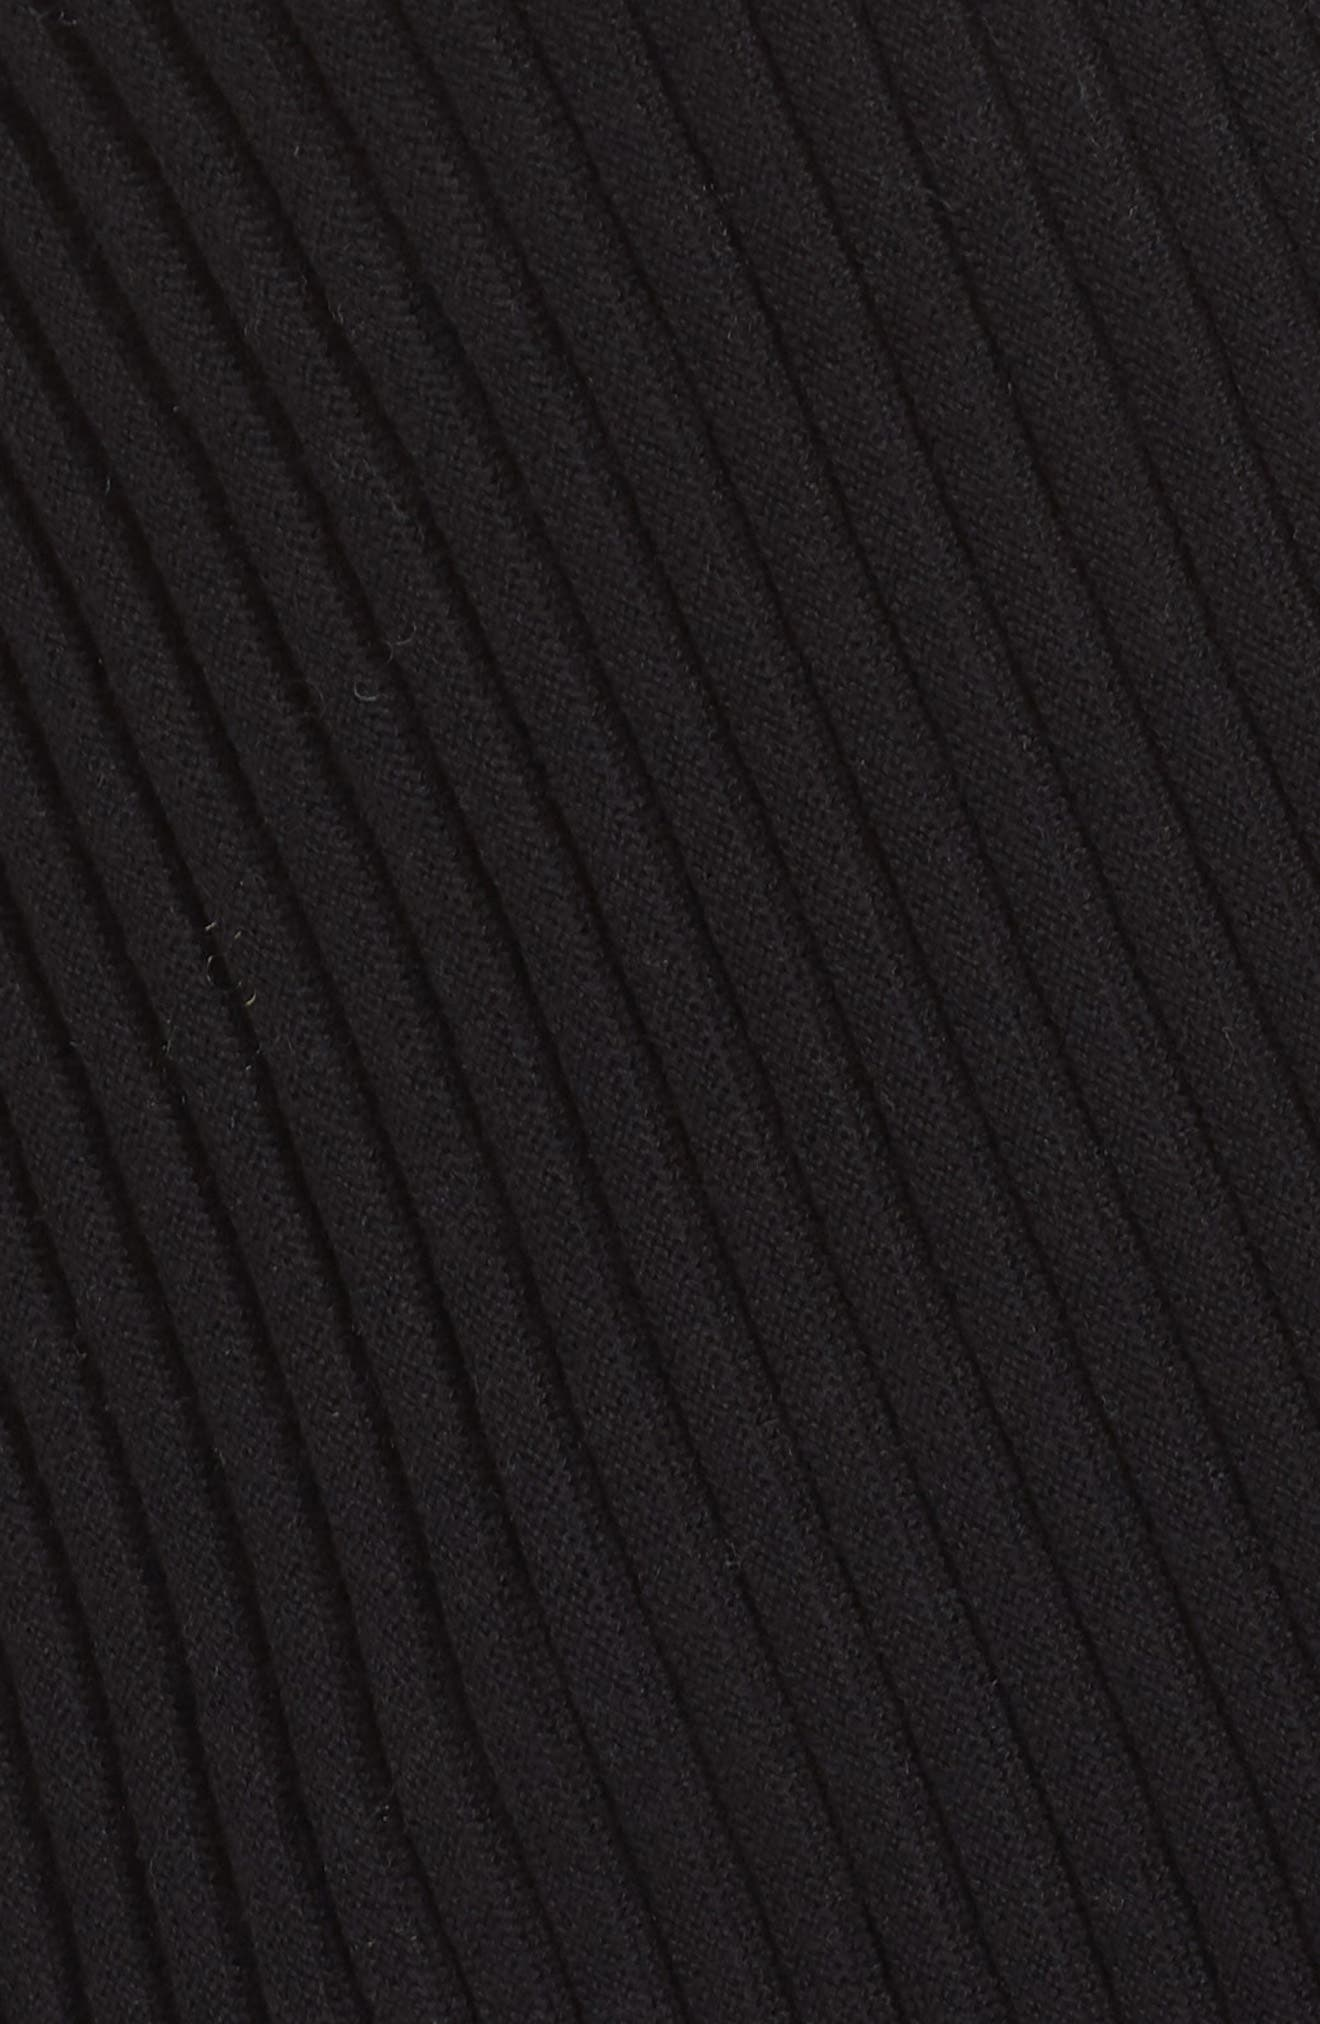 Cuff Sleeve Ribbed Sweater,                             Alternate thumbnail 5, color,                             BLACK